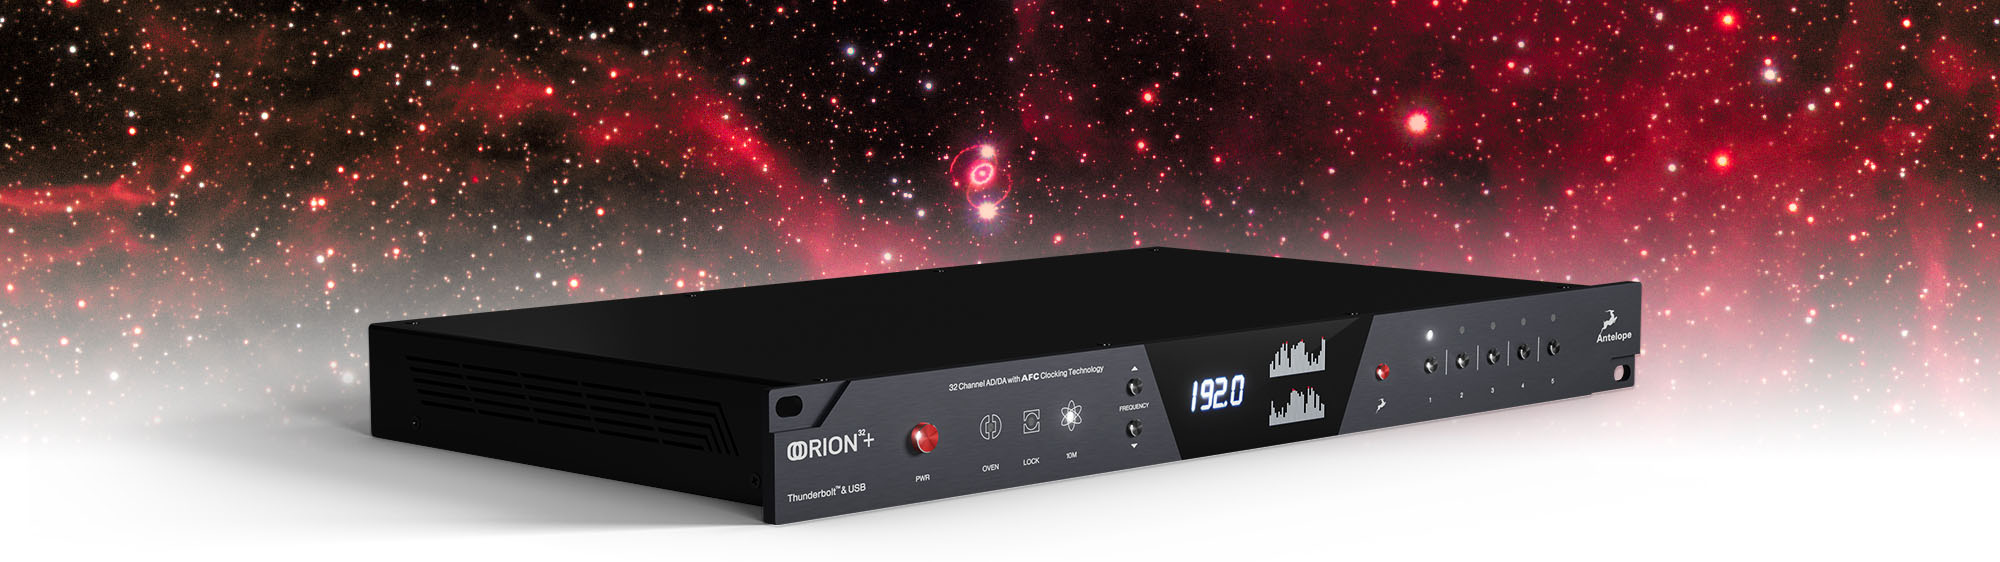 Antelope Audio announces availability of Orion 32+ | Gen 3 innovative interface and cutting-edge AD/DA converter